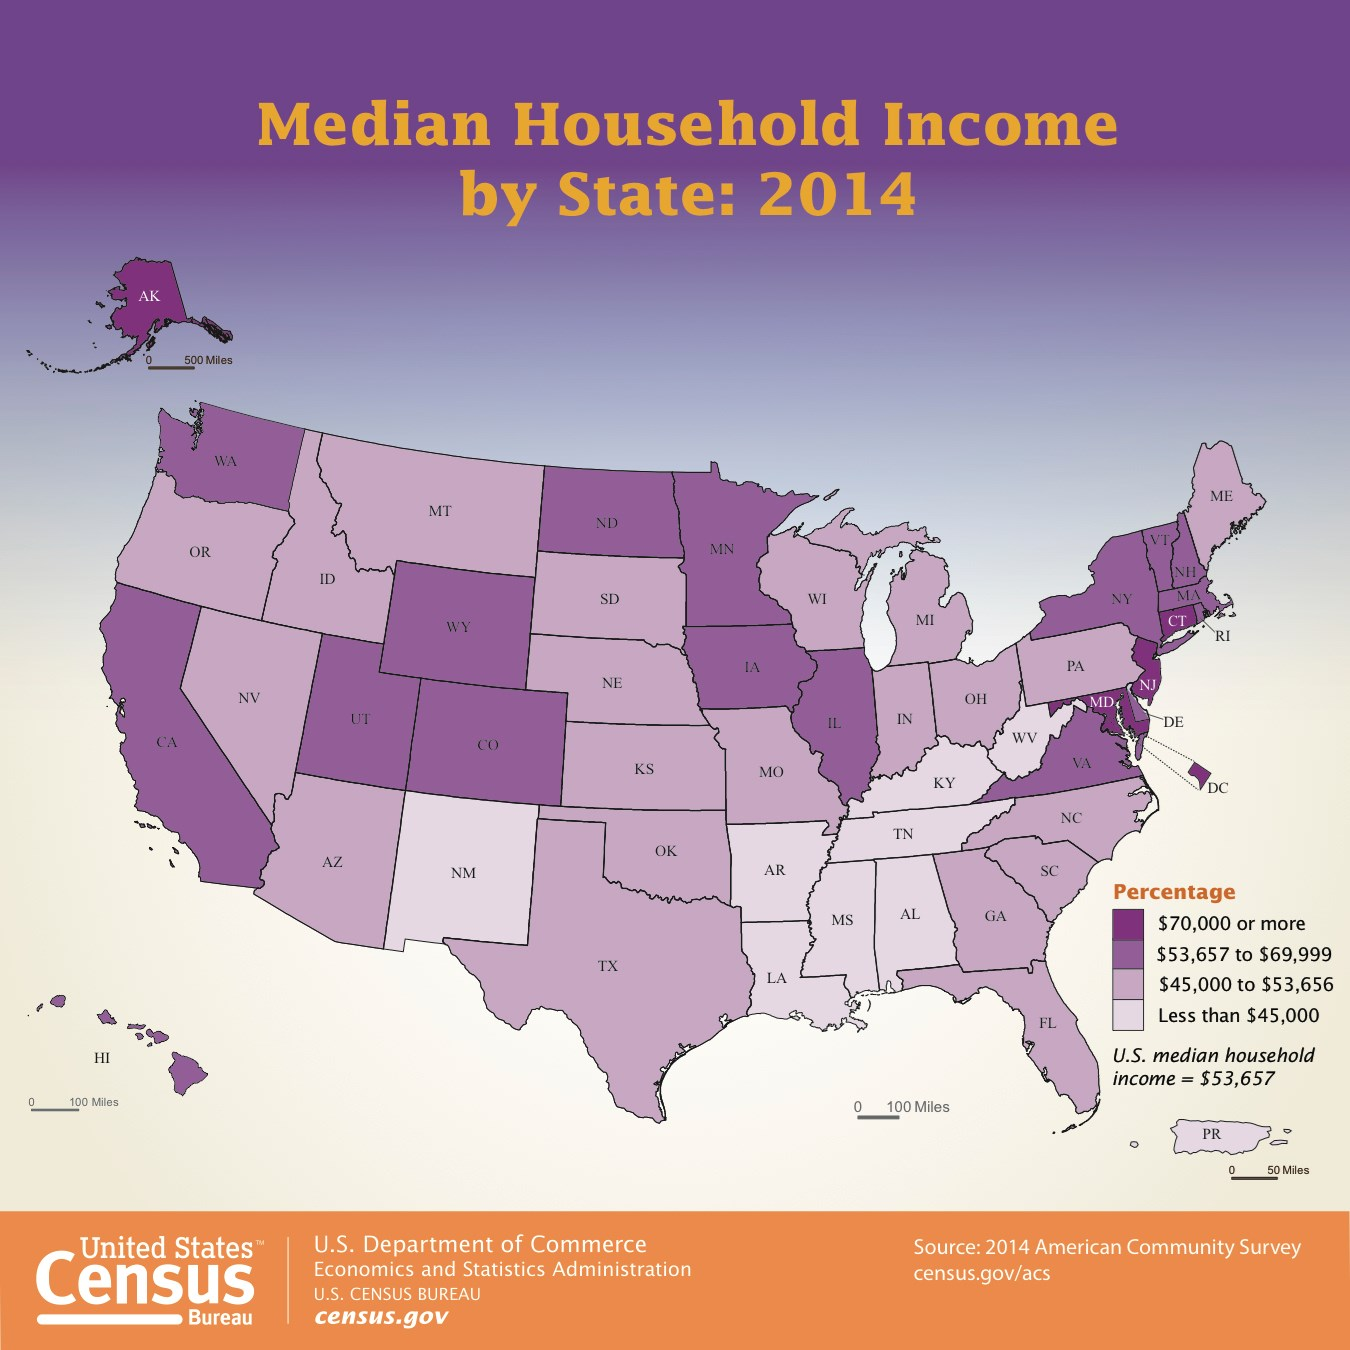 The darker the purple, the higher the median household income.